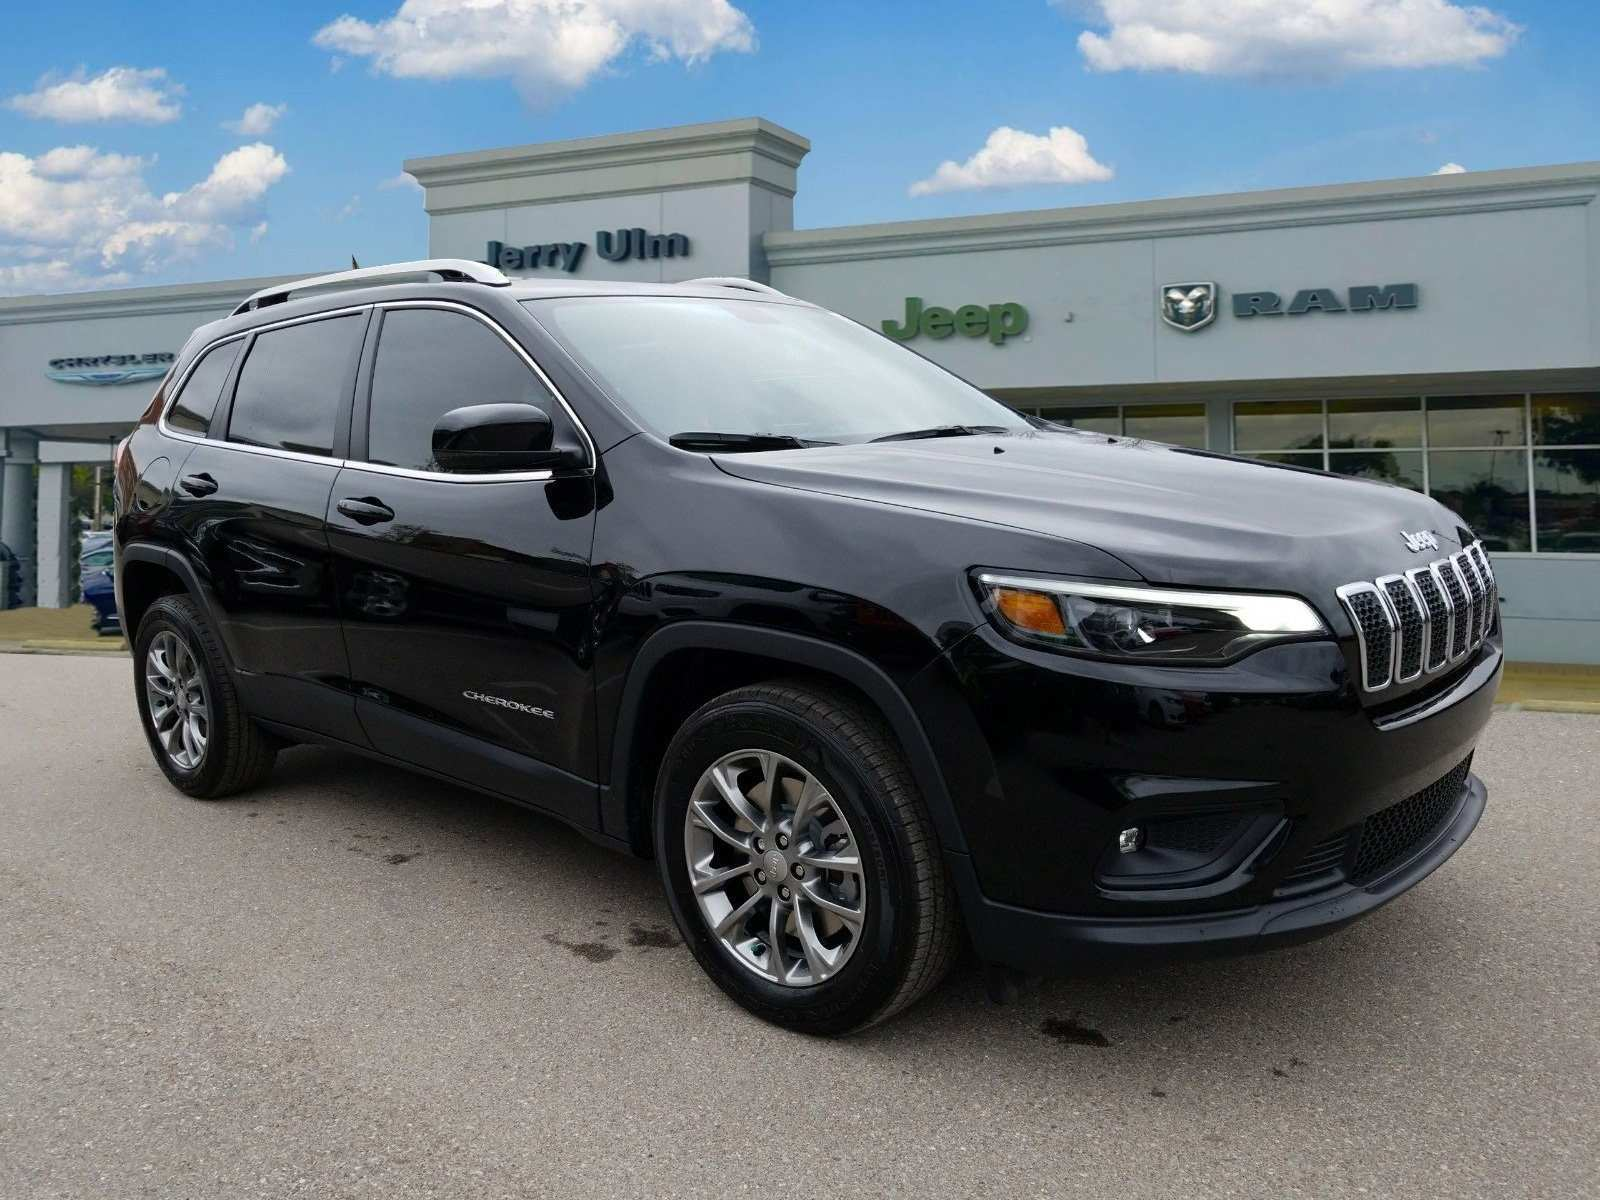 15 Gallery of The Jeep Cherokee Latitude Plus 2019 Release Date Exterior with The Jeep Cherokee Latitude Plus 2019 Release Date